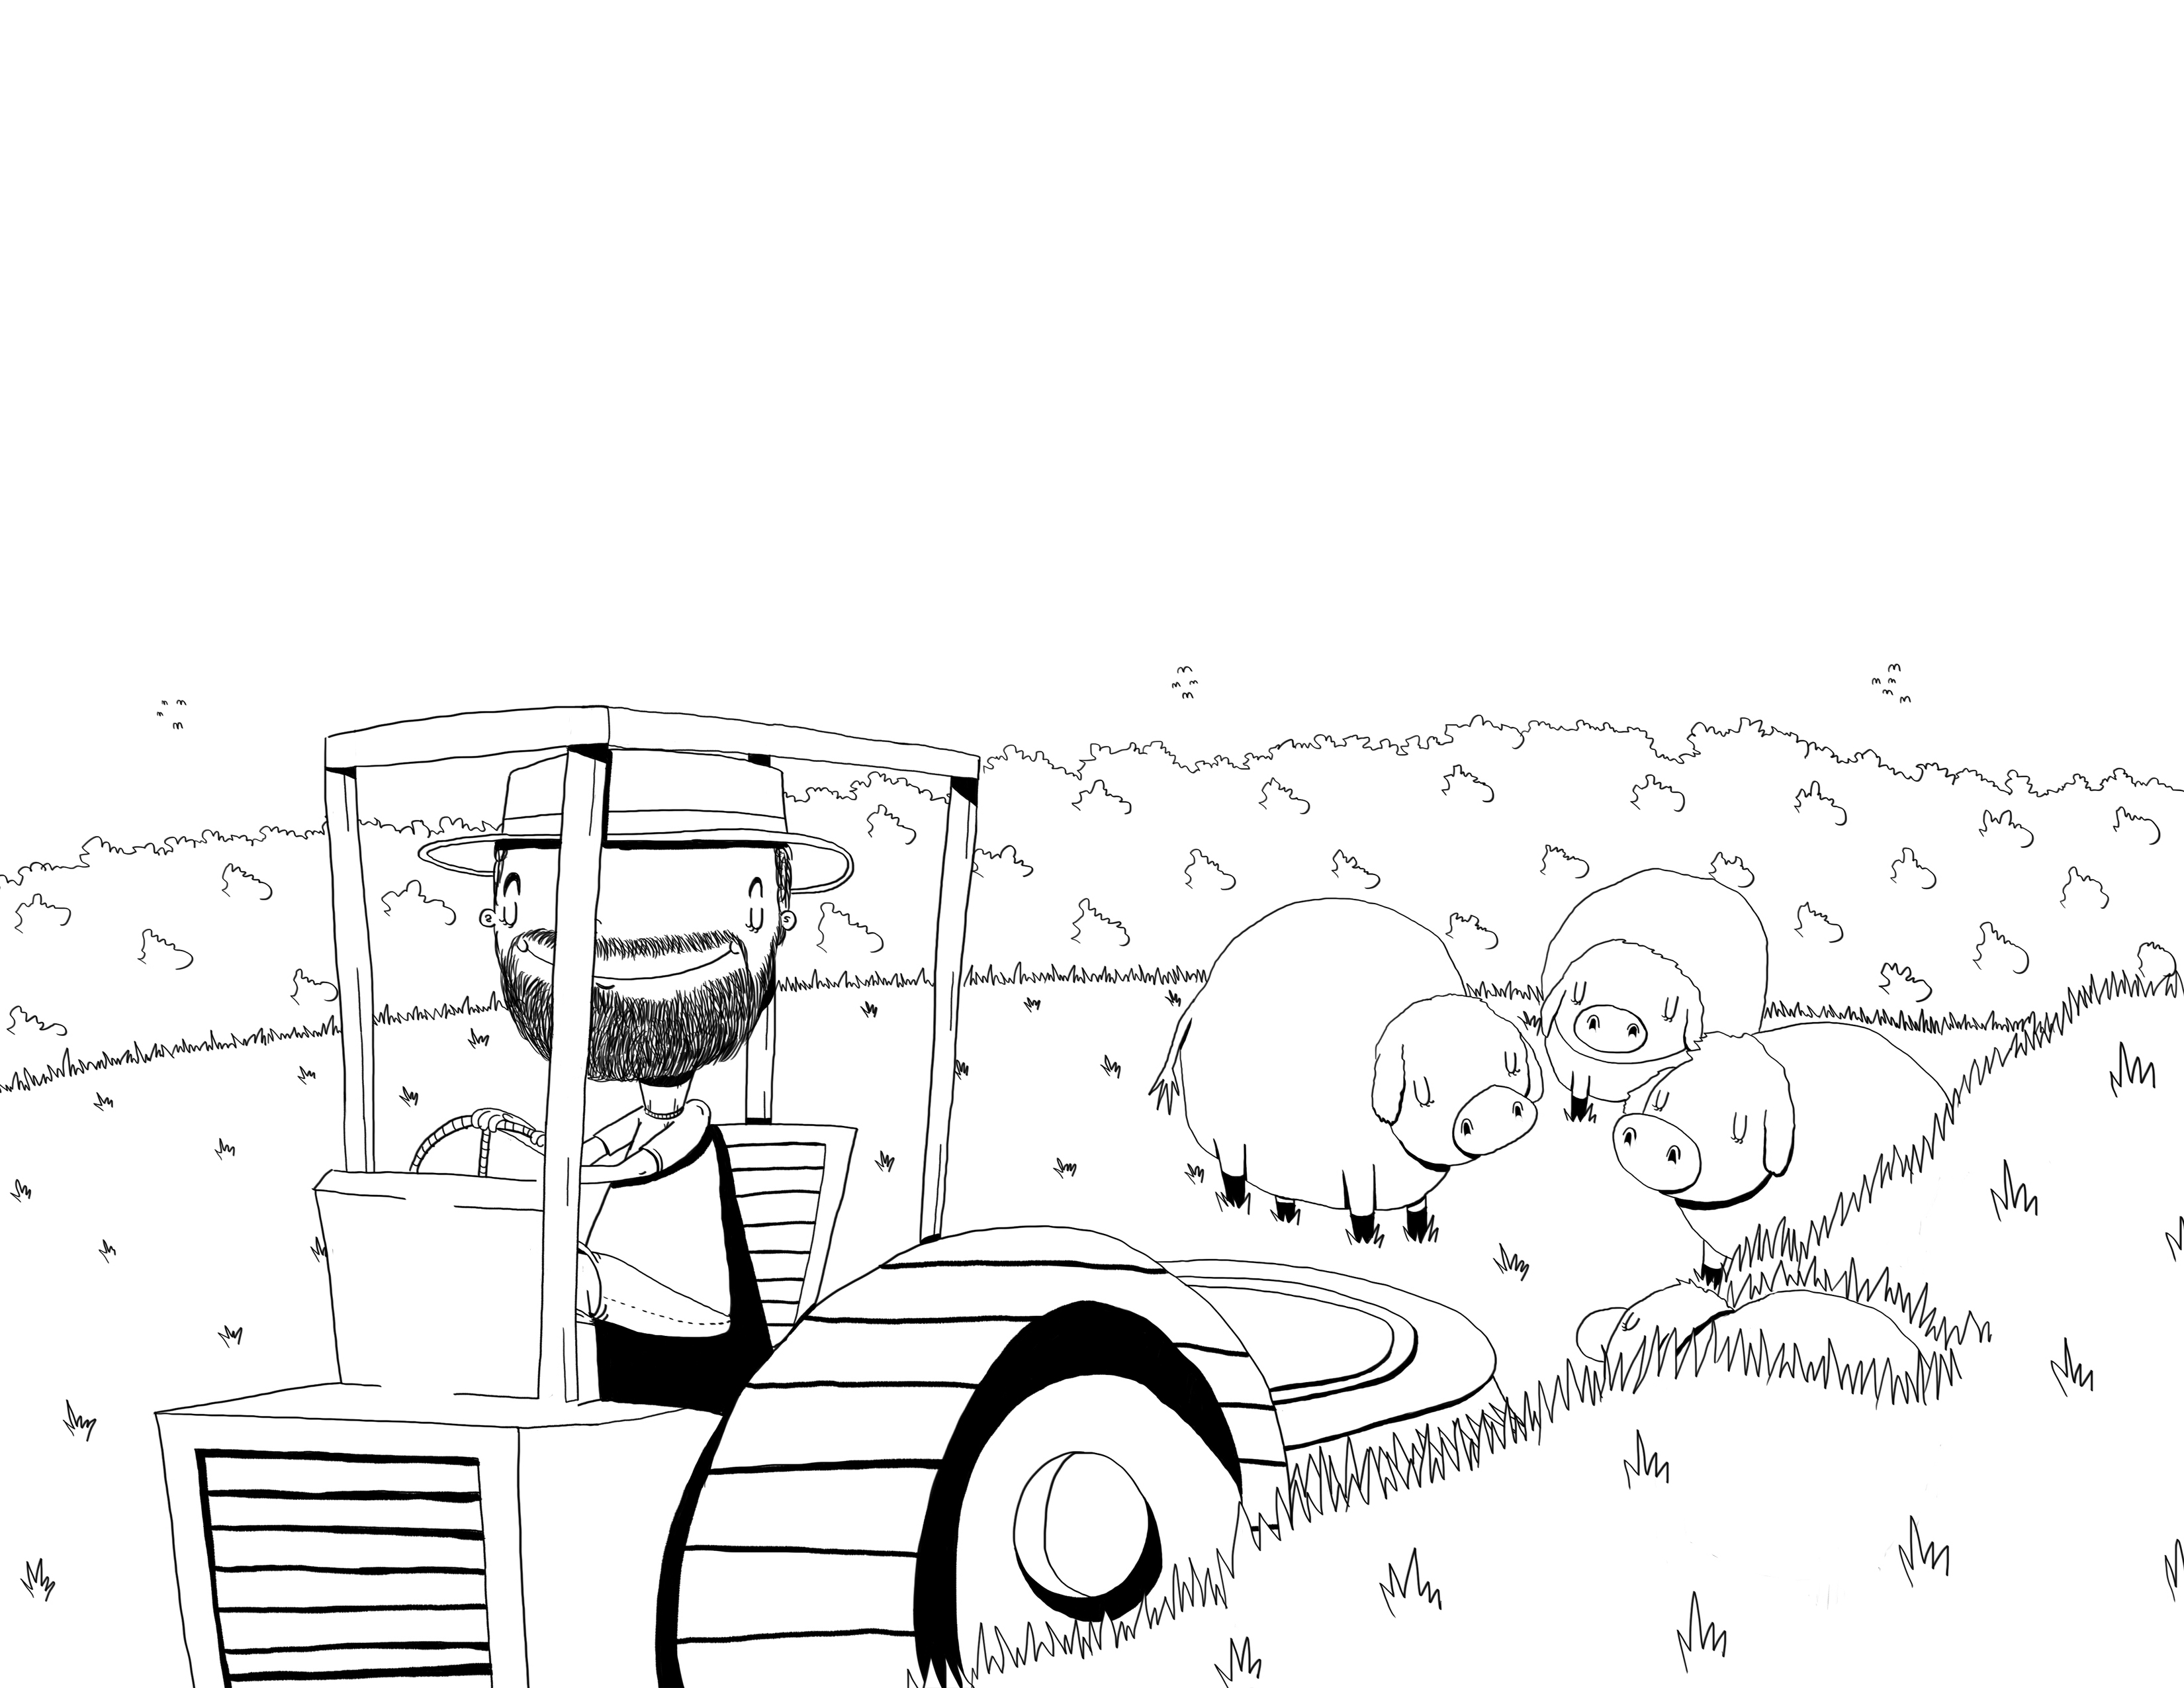 Coloring book download zip - Here Is A Download Of Mr Ernie Makes A Farm Coloring Book For Freeeeeeeee Follow The Link To Dropbox To Download The Zip And Get Your Color On